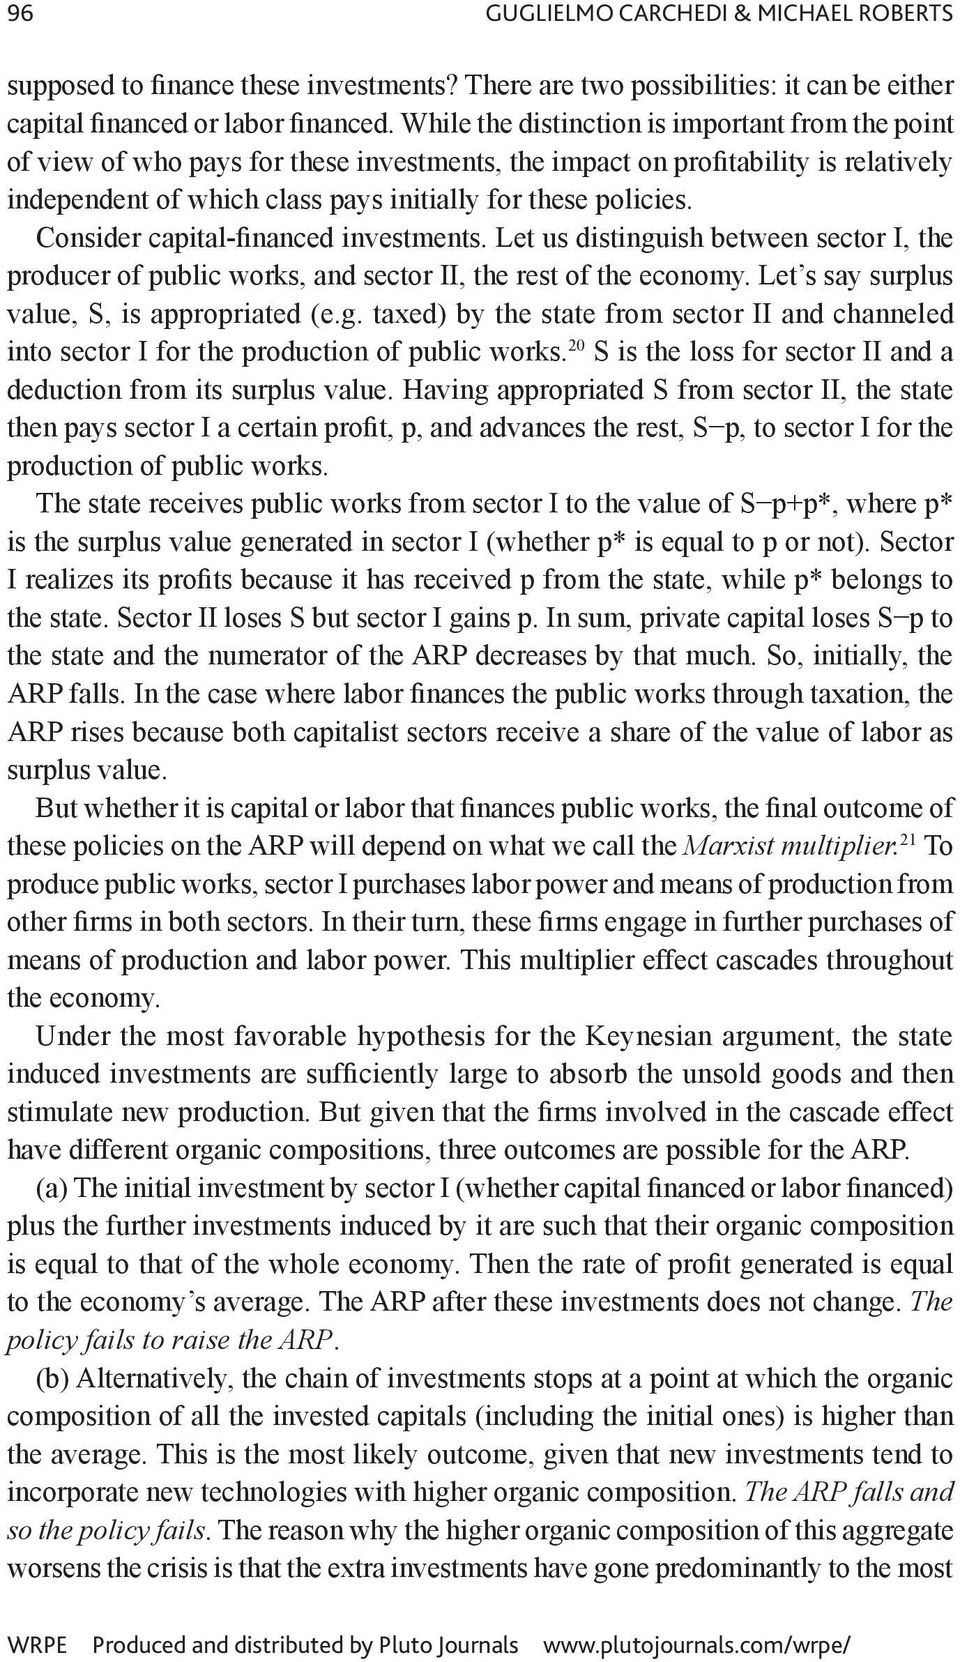 Consider capital-financed investments. Let us distinguish between sector I, the producer of public works, and sector II, the rest of the economy. Let s say surplus value, S, is appropriated (e.g. taxed) by the state from sector II and channeled into sector I for the production of public works.